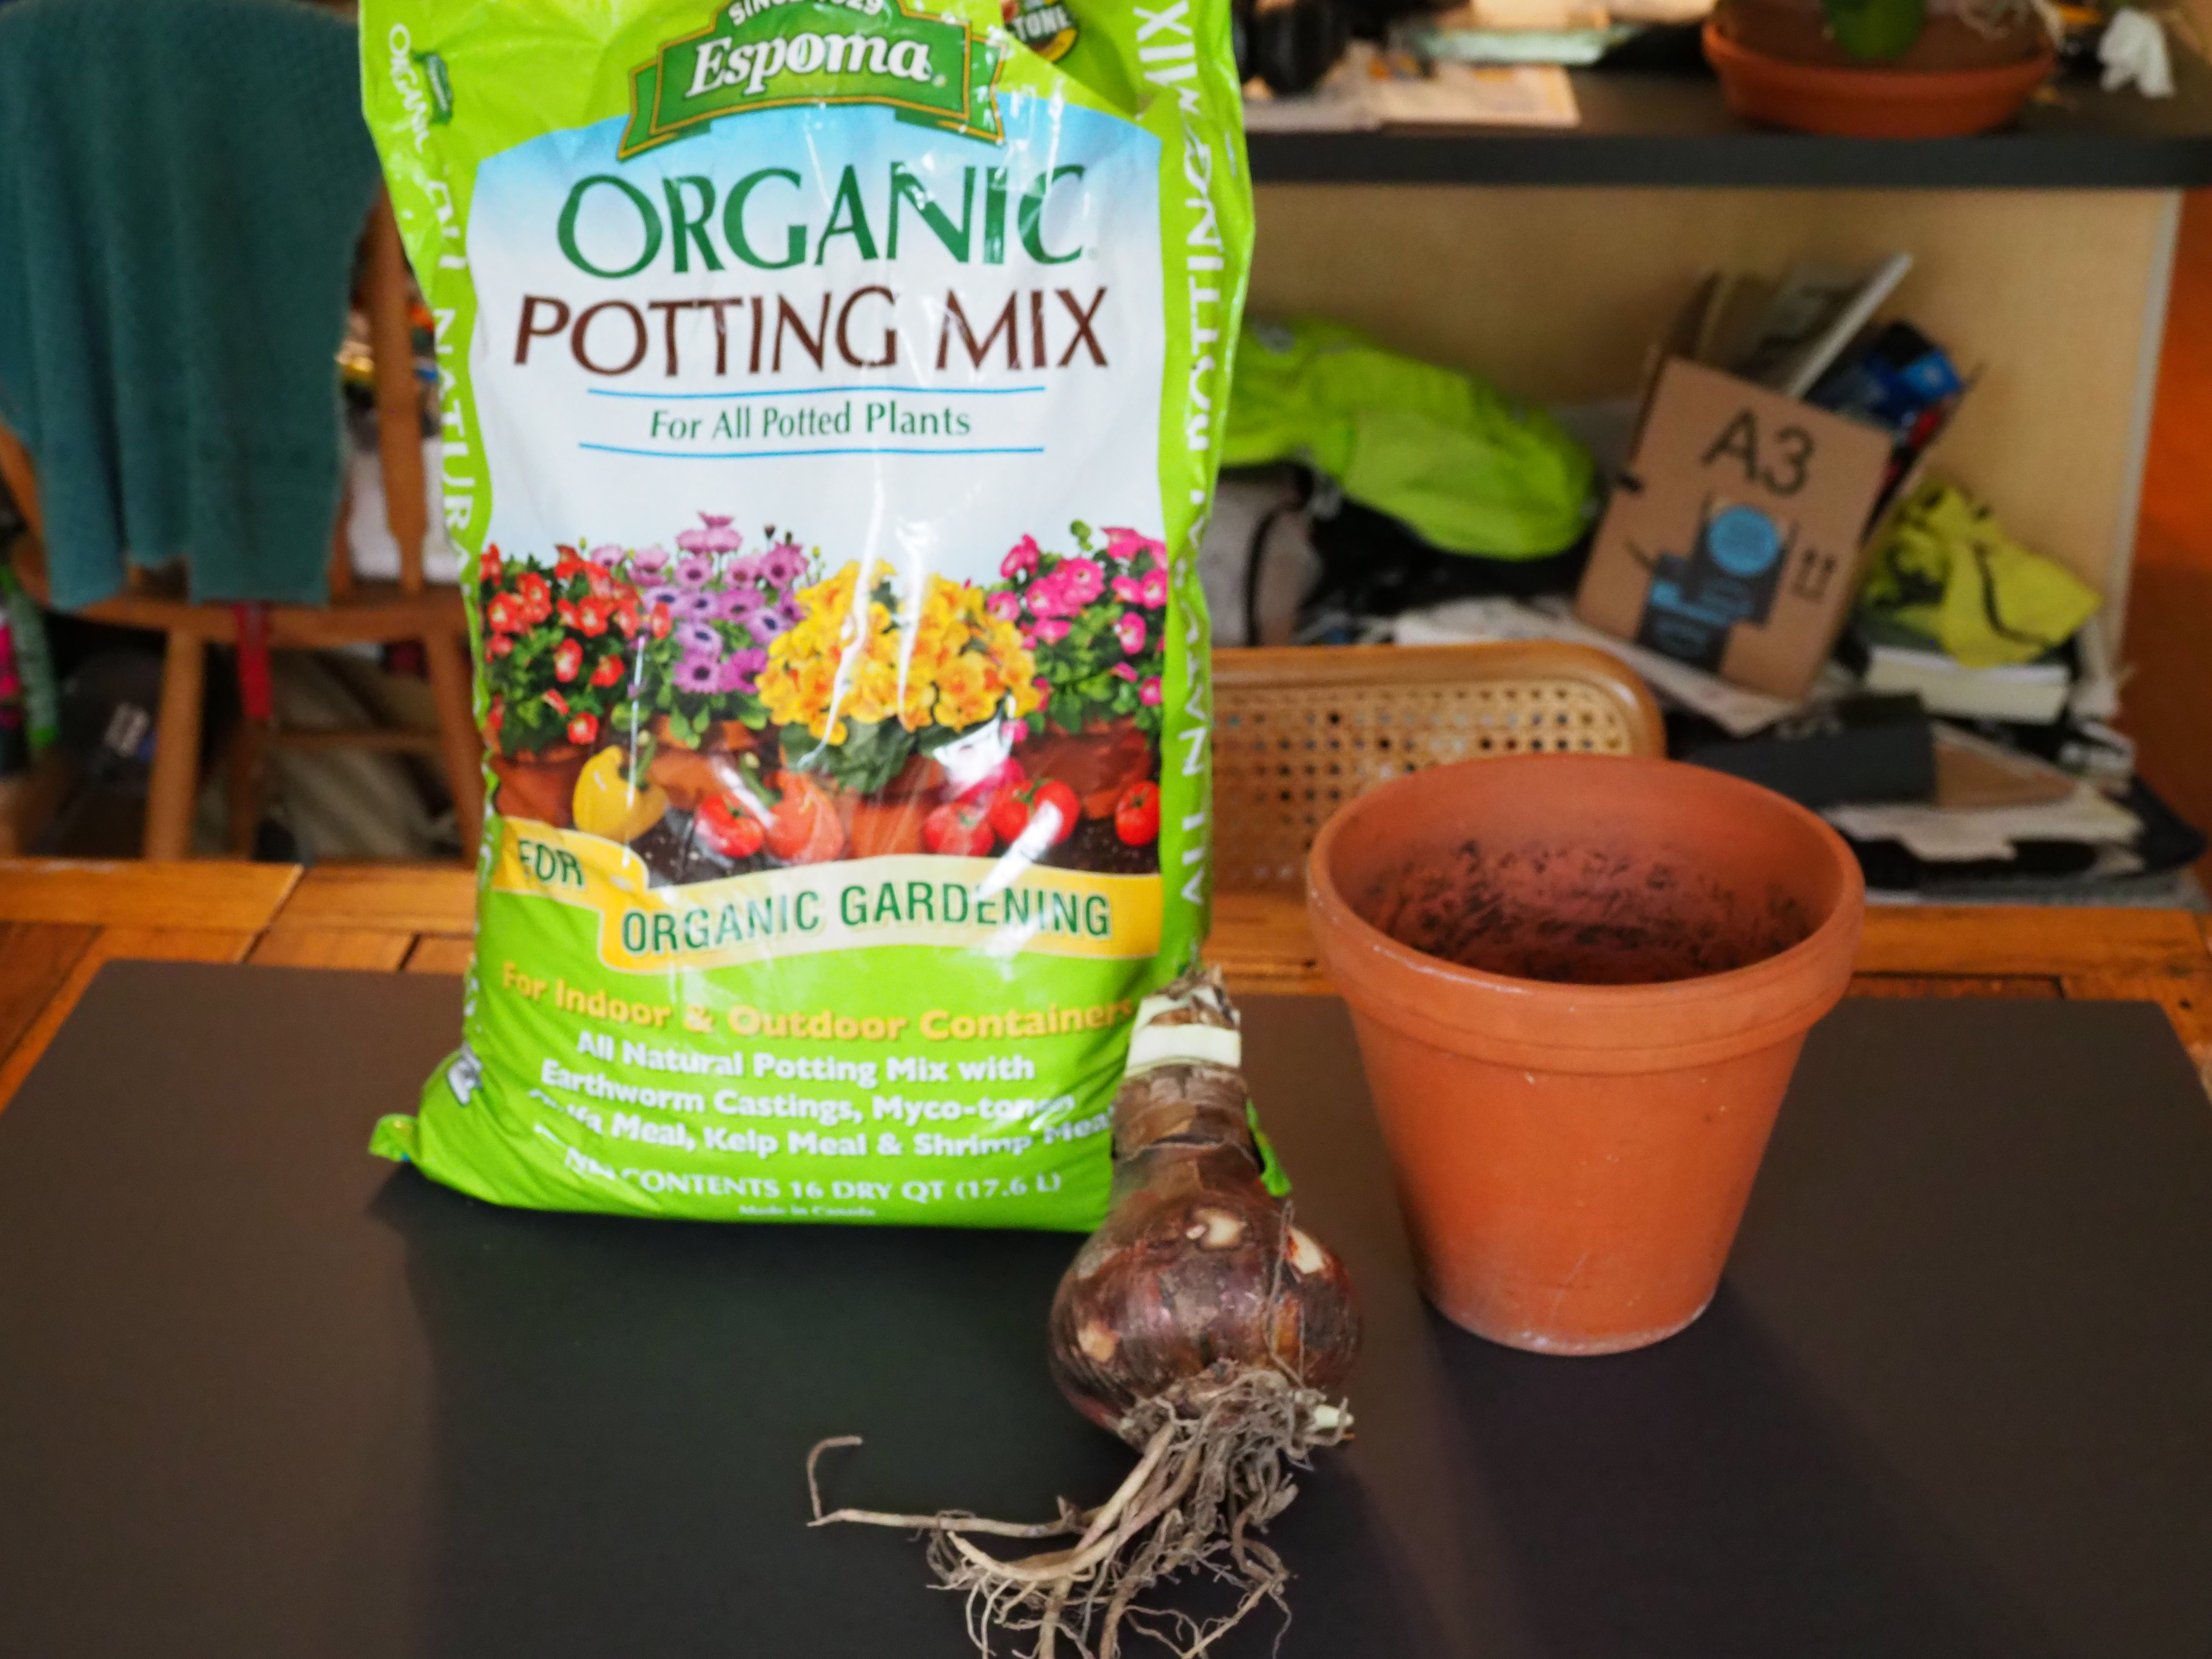 When potting an Amaryllis bulb use a brand-name peat-based potting soil, a clay pot to enhance drainage, and a top quality bulb. In this case the bulb is 5 inches in diameter and the pot is 7 inches in diameter. The pot diameter should not be more than 2 inches larger in diameter than the bulb. ANDREW MESSINGER